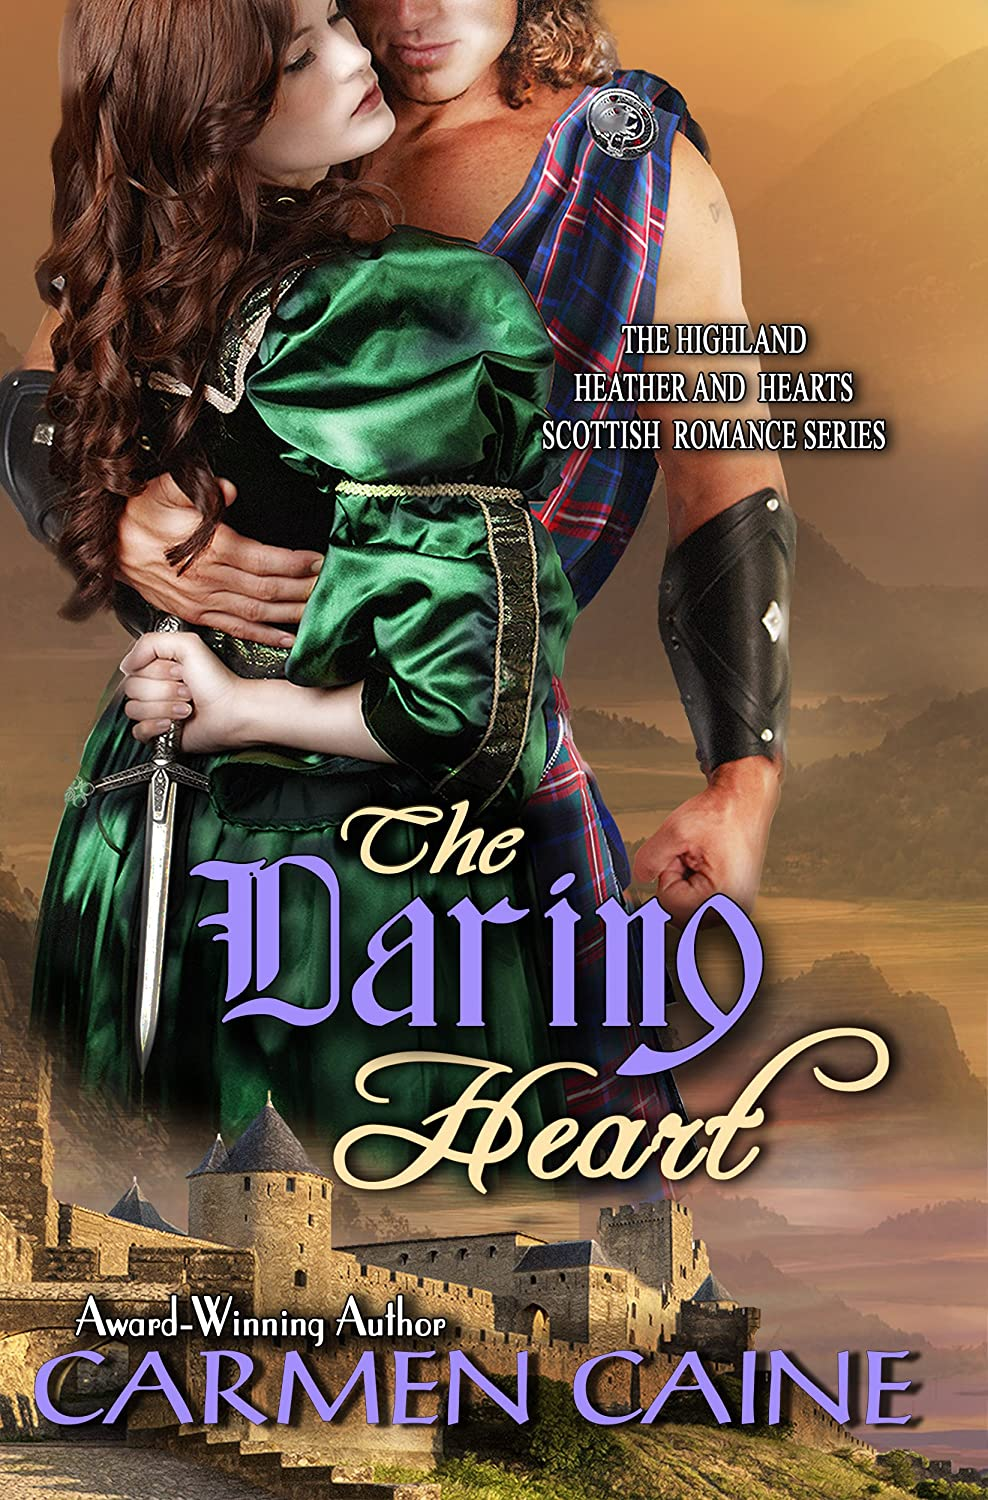 The Daring Heart By Carmen Caine Review